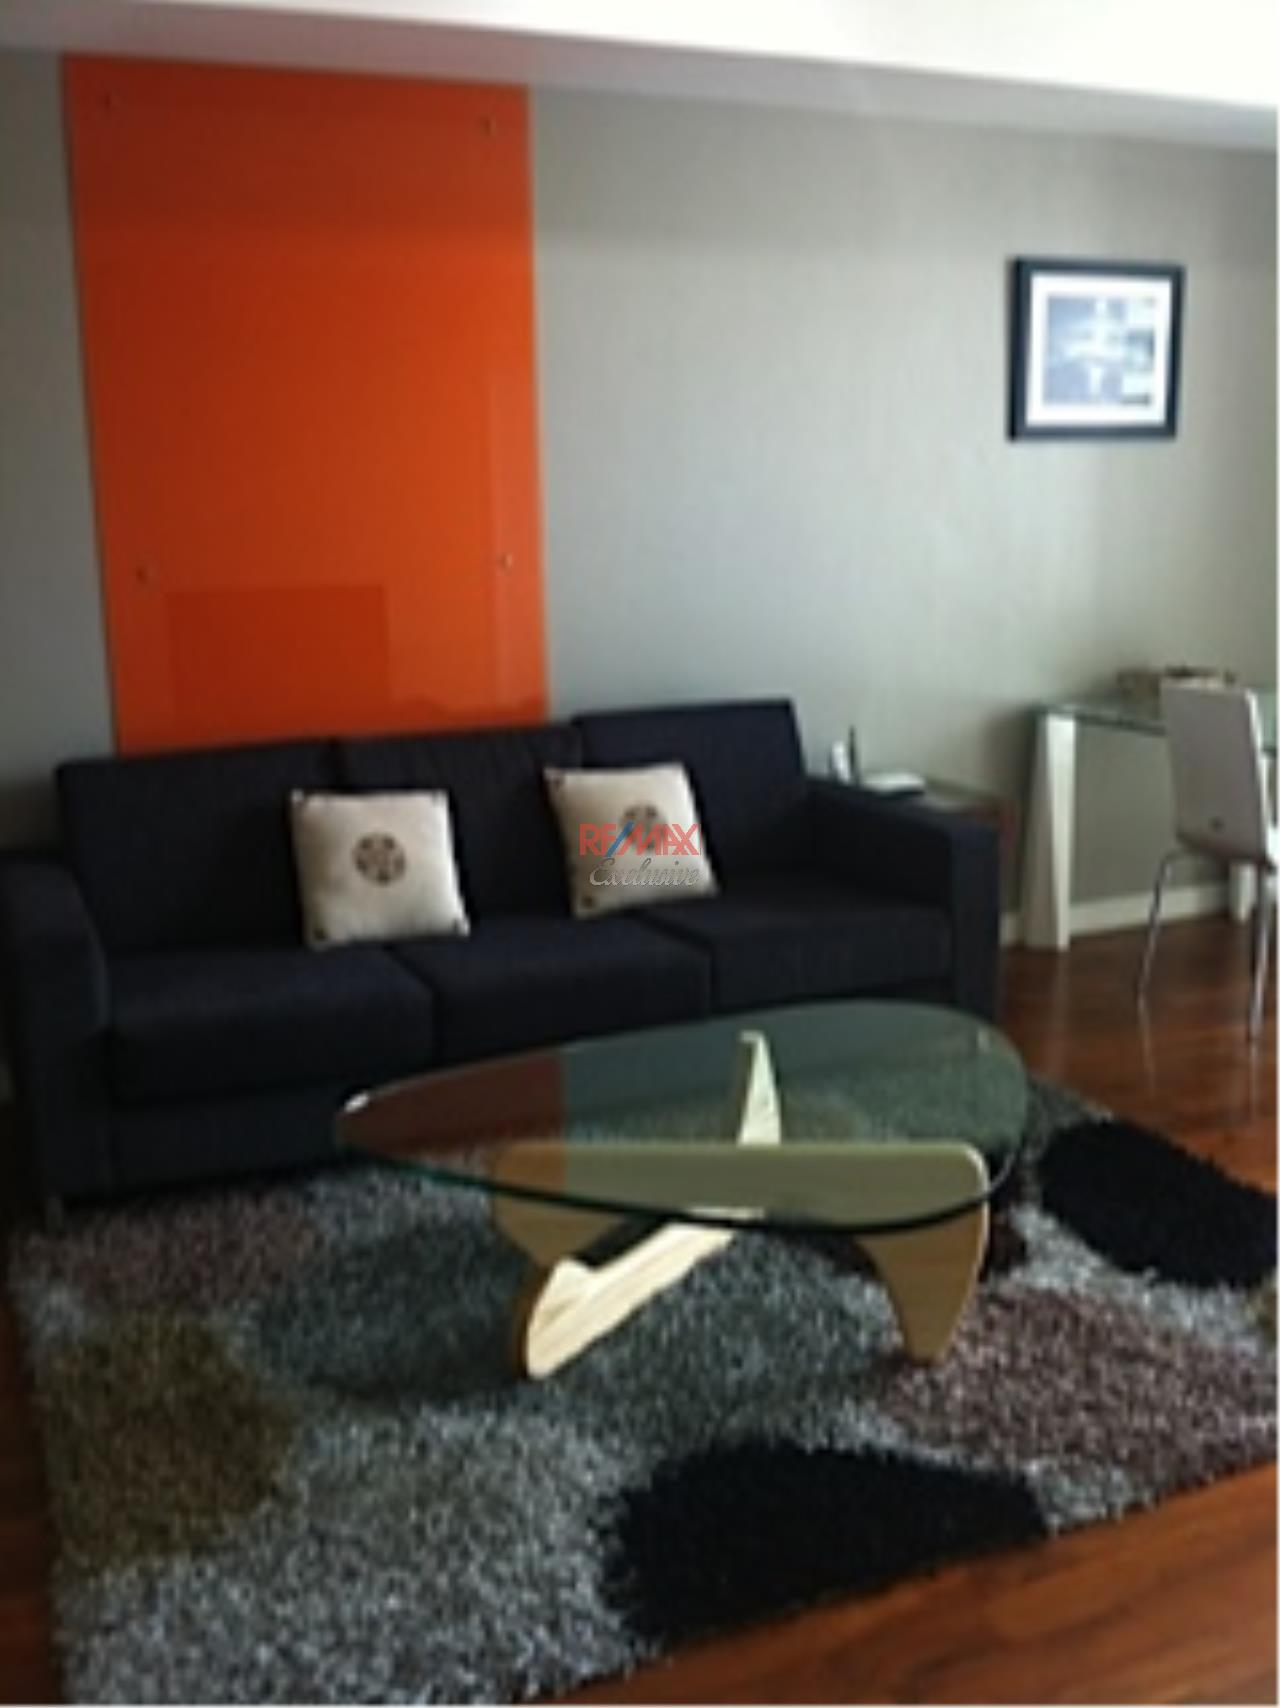 RE/MAX Exclusive Agency's BAAN SIRI 24, Sukhumvit 24, Fully-Furnished, 1 Bedroom, 60 Sq.M. High Floor, City View! 11